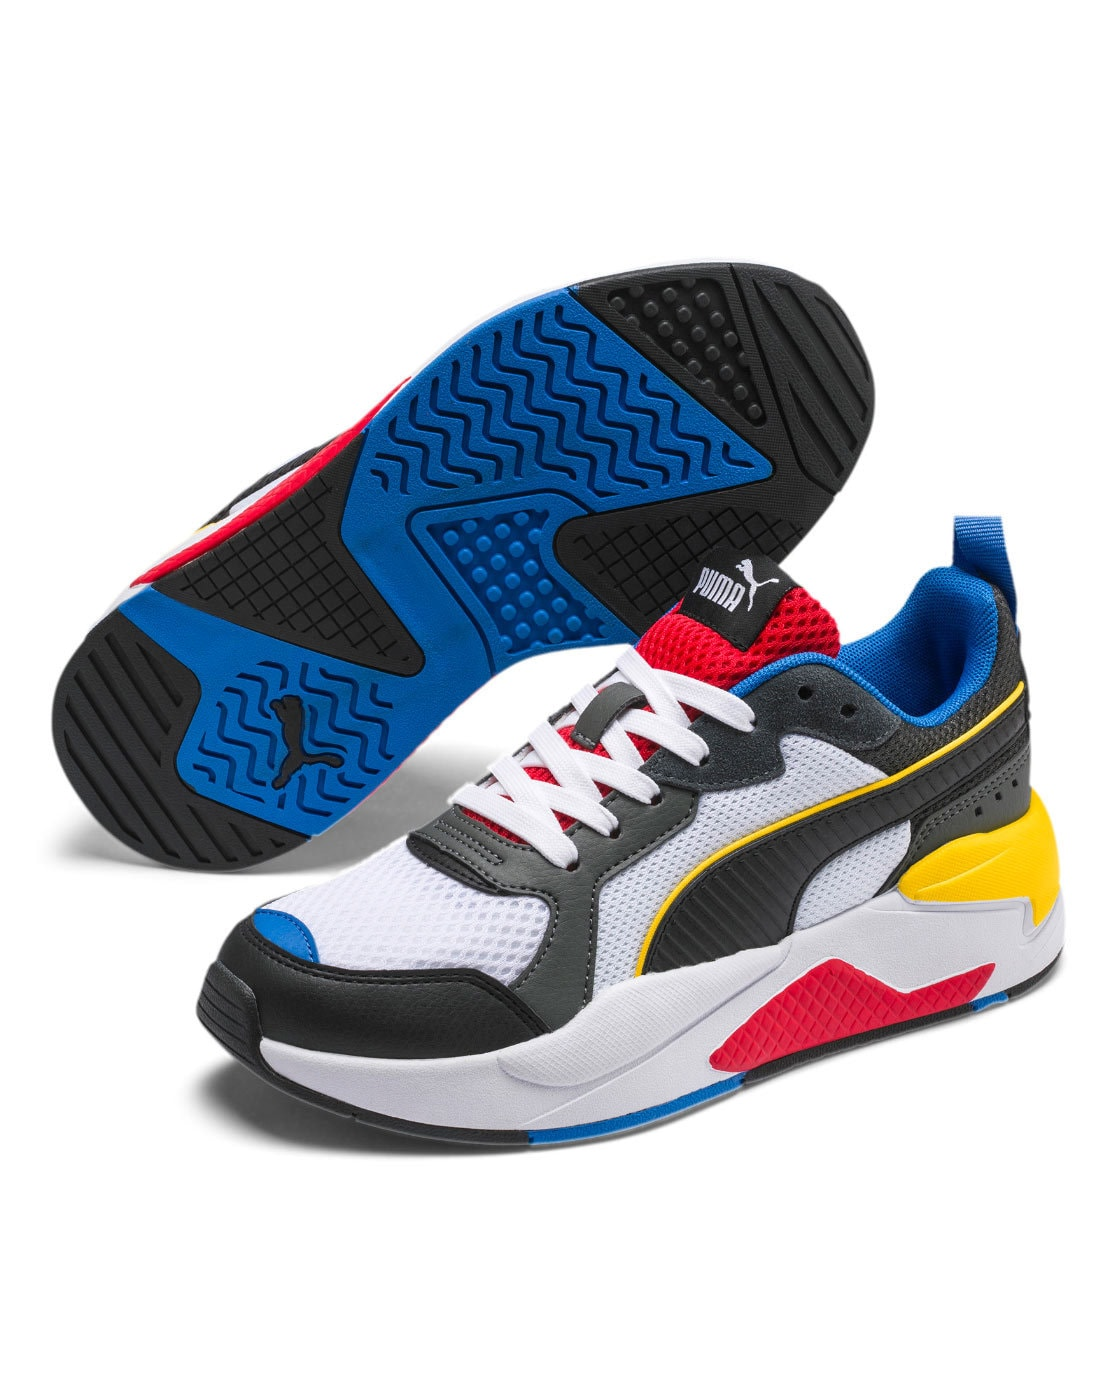 Multicoloured Shoes for Boys by Puma